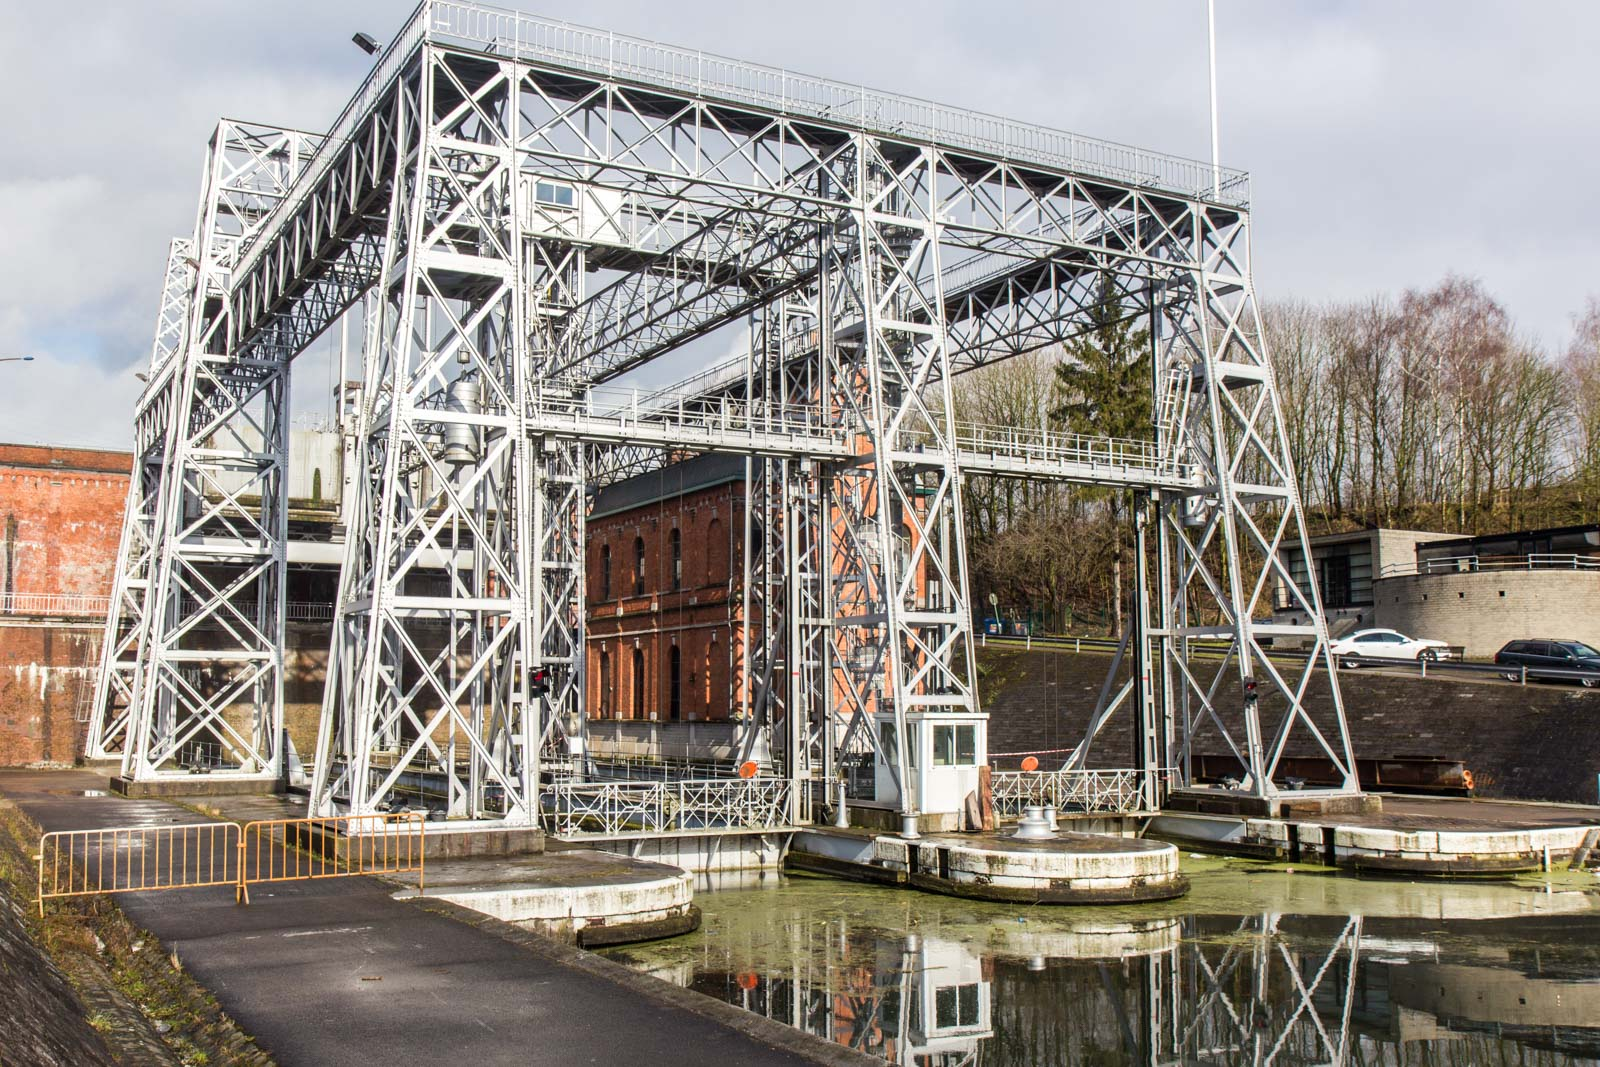 Four lifts on the Canal du Centre, Belgium